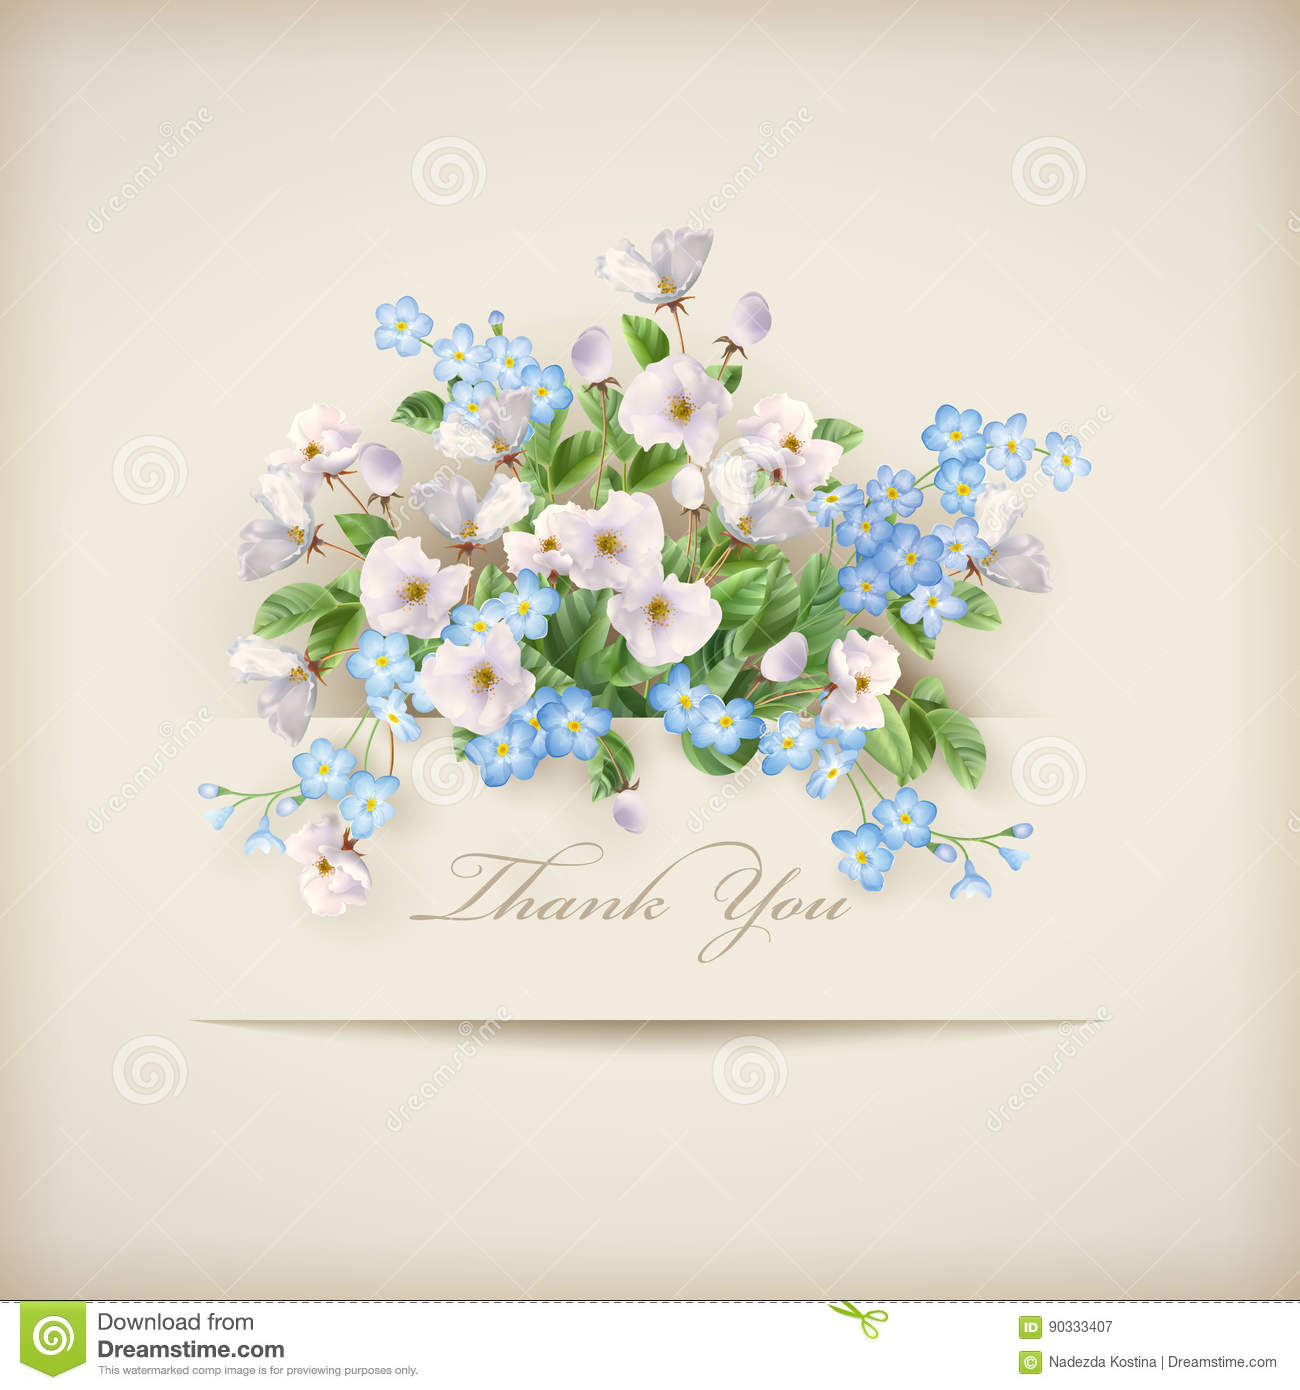 Beautiful Flower Thank You: Floral Vector Card Stock Vector. Image Of Blue, Pastel